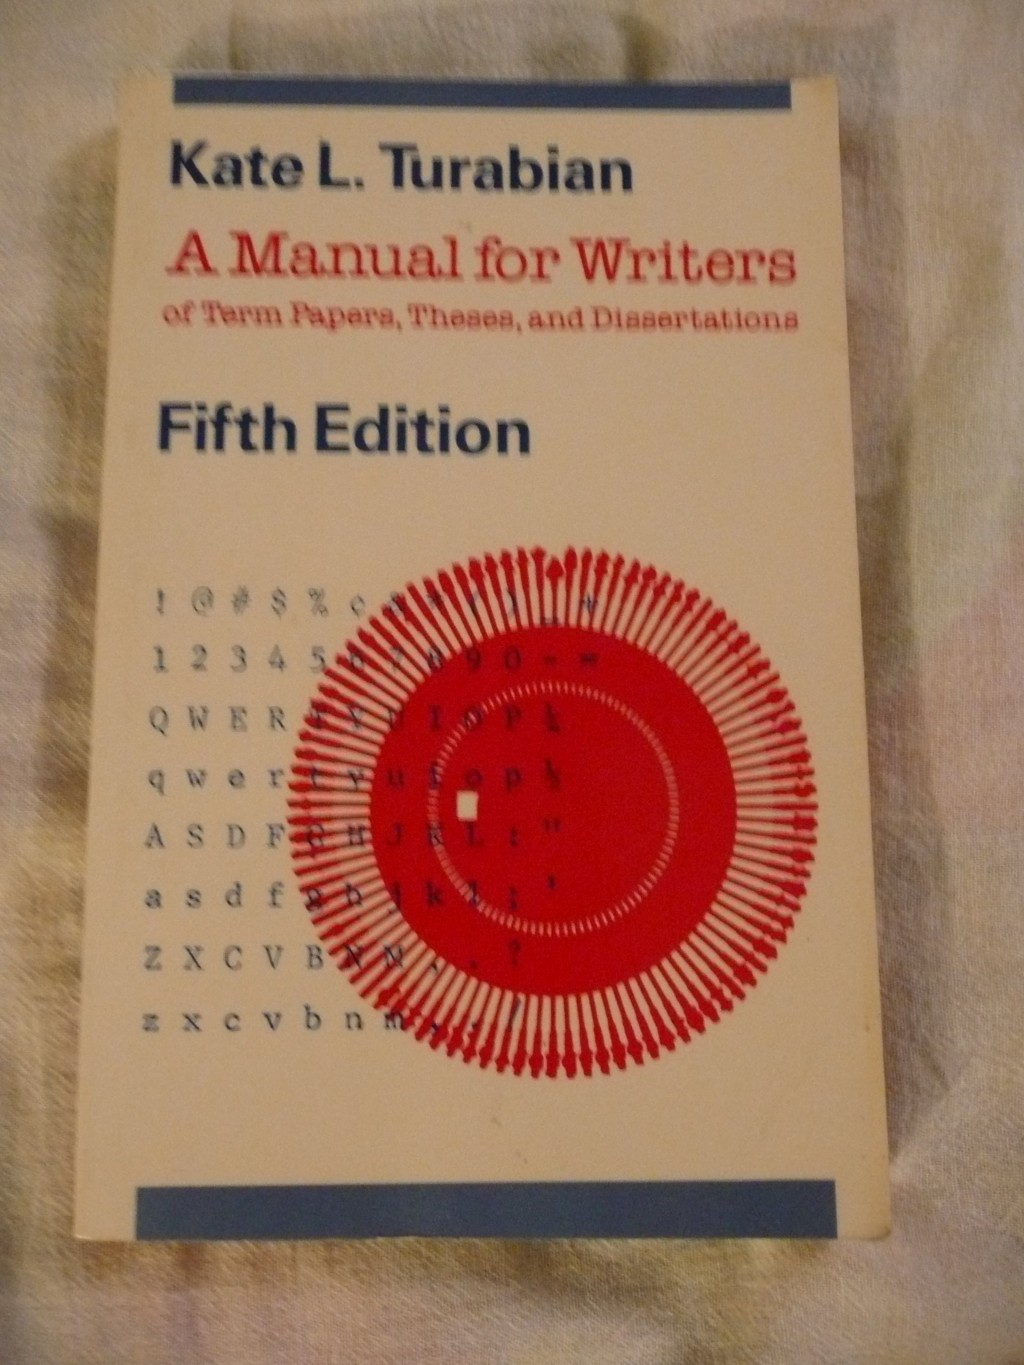 007 91nltv7olql Manual For Writers Of Researchs Theses And Dissertations 8th Imposing Research Papers 13 Large